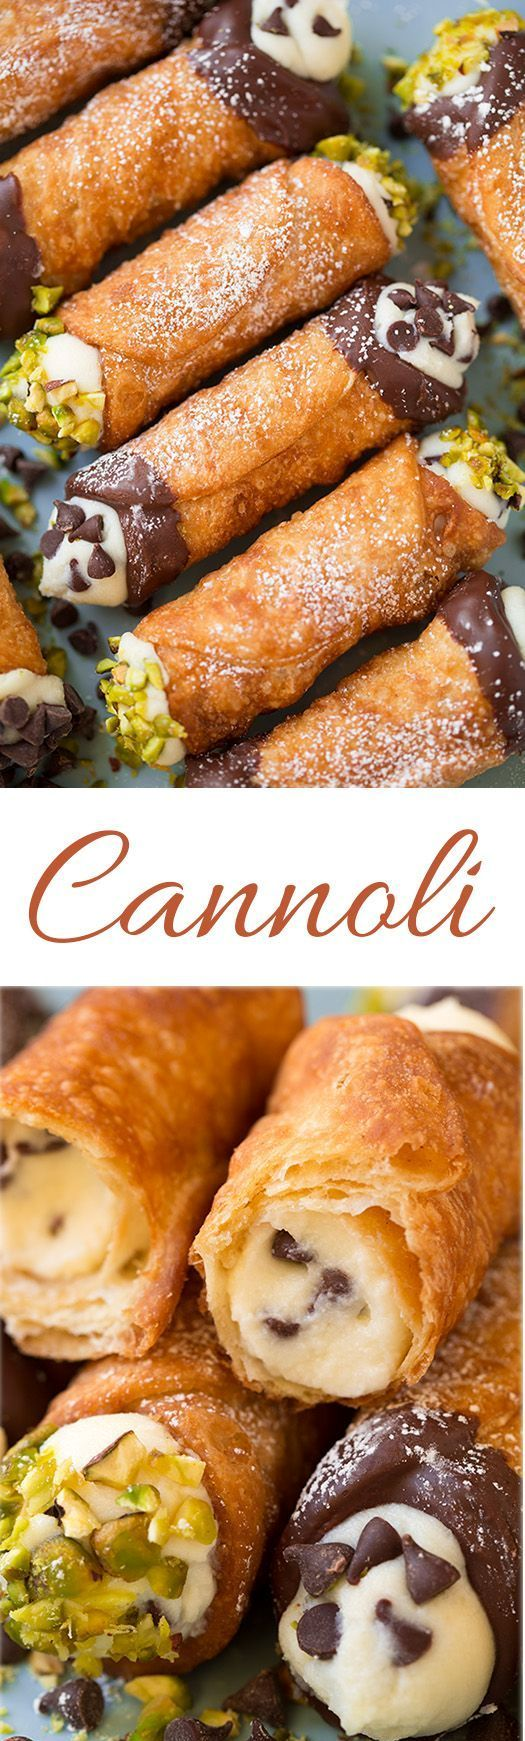 Cannoli (shell and filling recipes) - These are seriously dreamy! Perfectly crisp shell and deliciously creamy filling. Just like the ones from Italian bakeries.